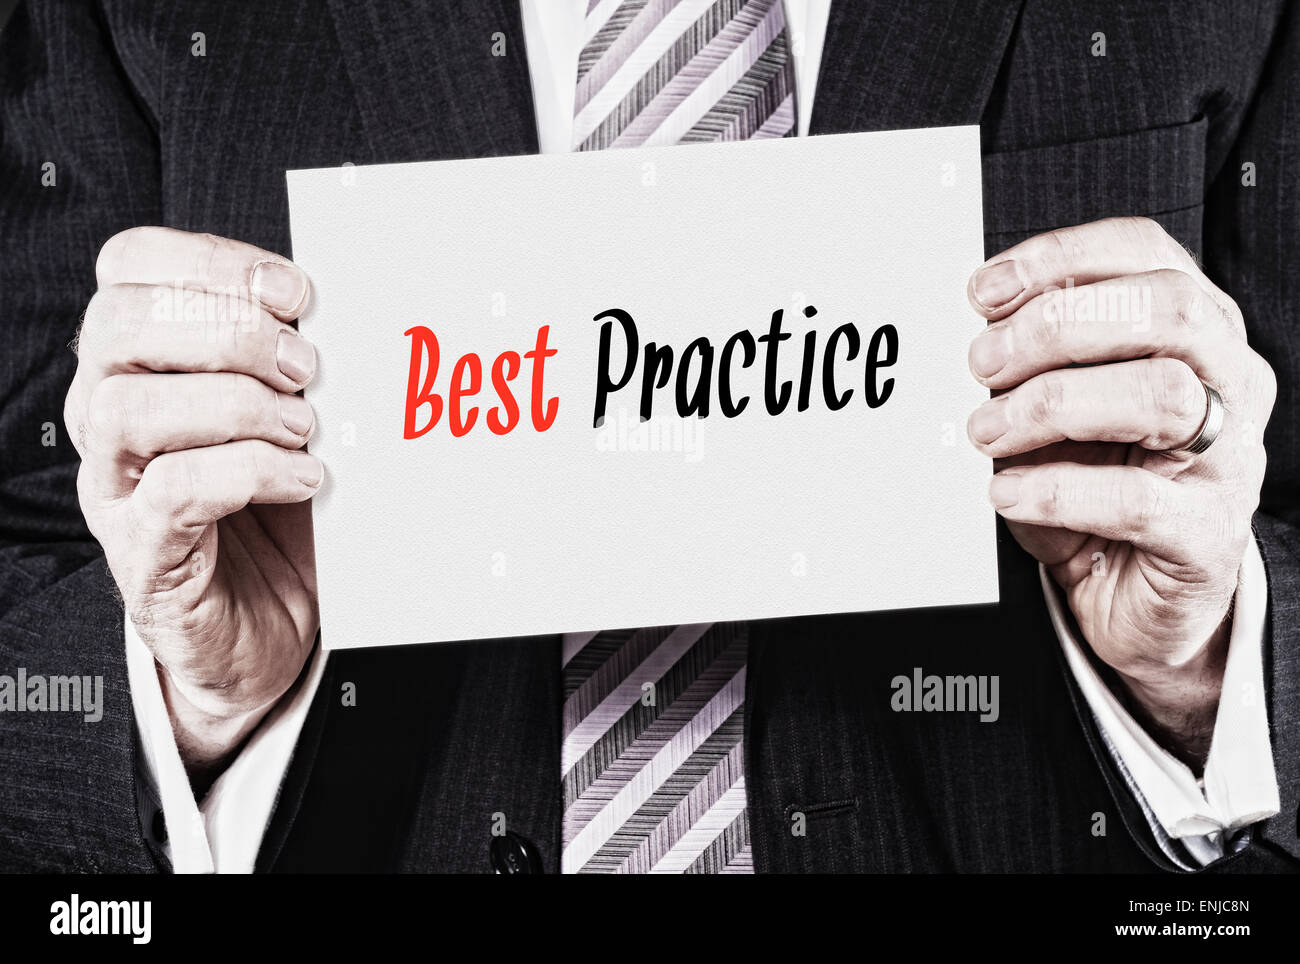 A businessman holding a business card with the words,  Best Practice, written on it. - Stock Image